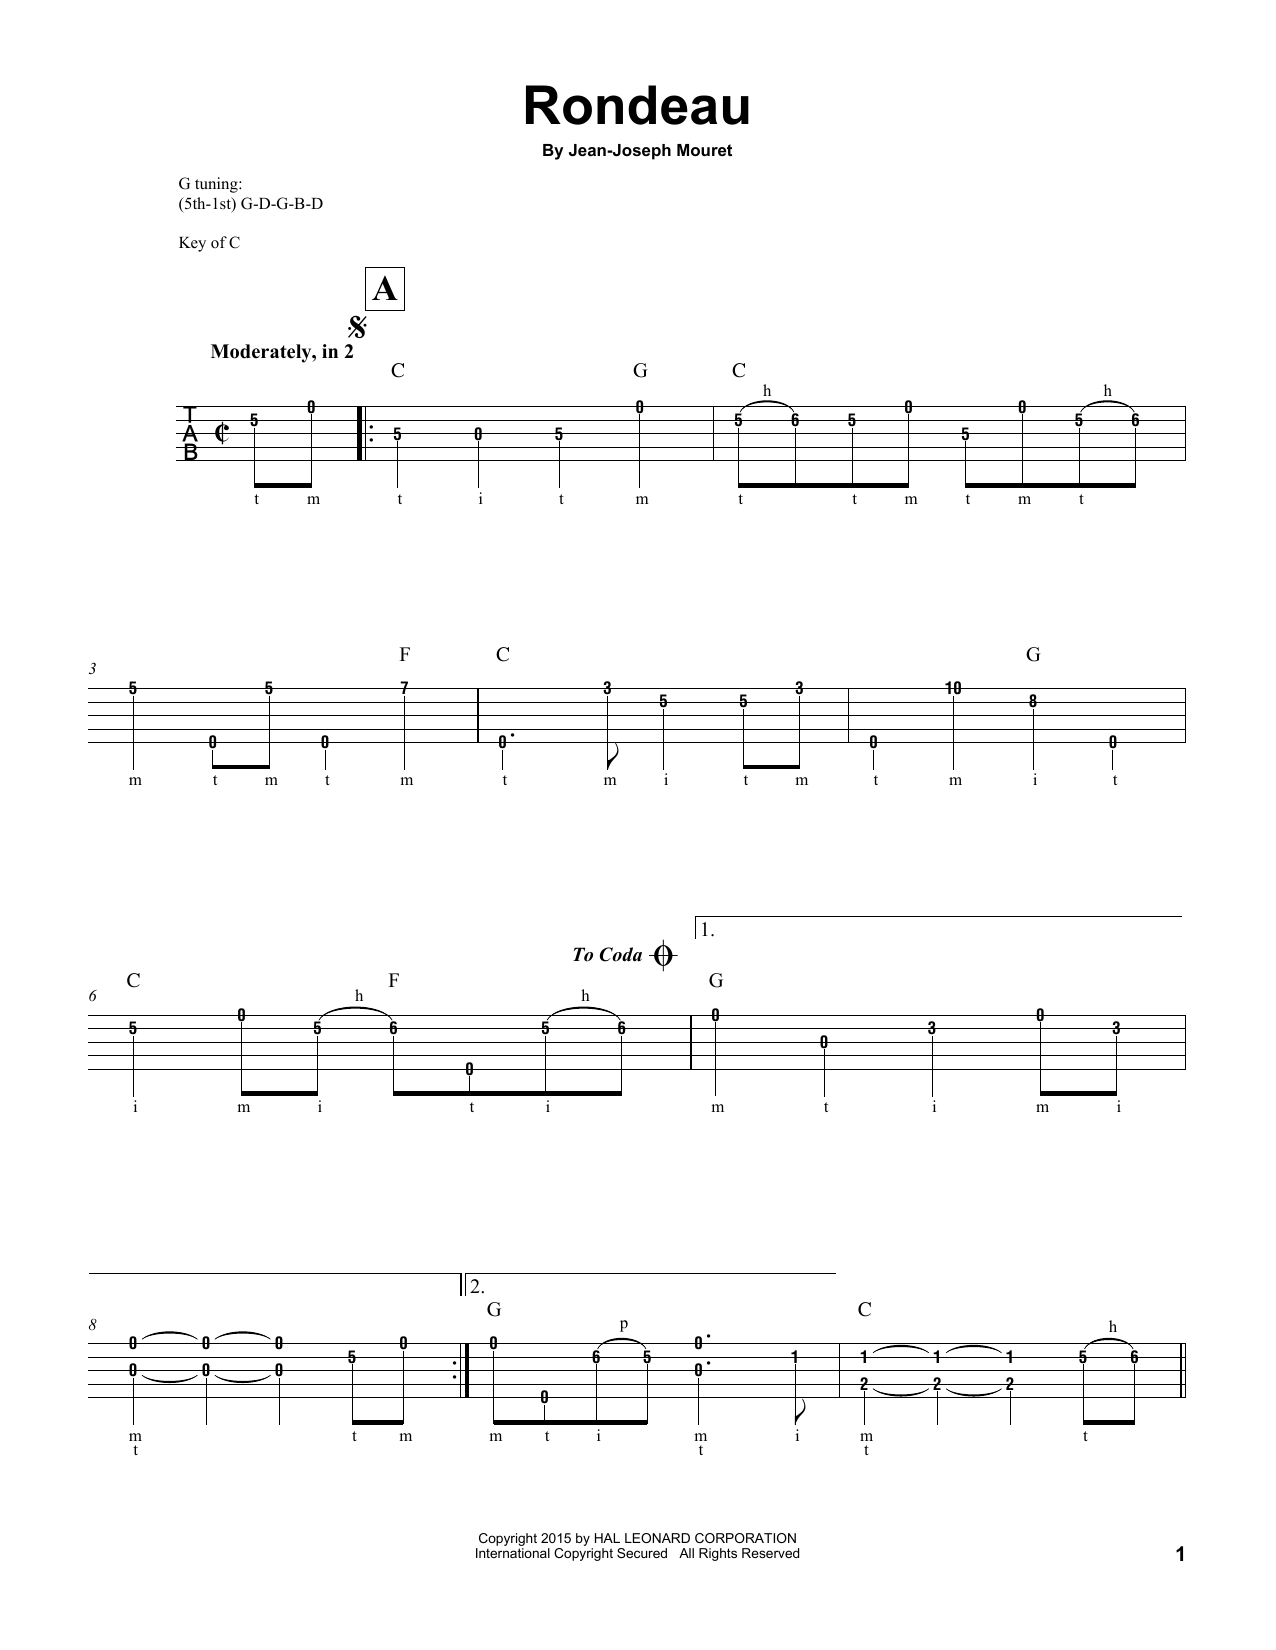 Jean-Joseph Mouret Fanfare Rondeau sheet music notes and chords. Download Printable PDF.